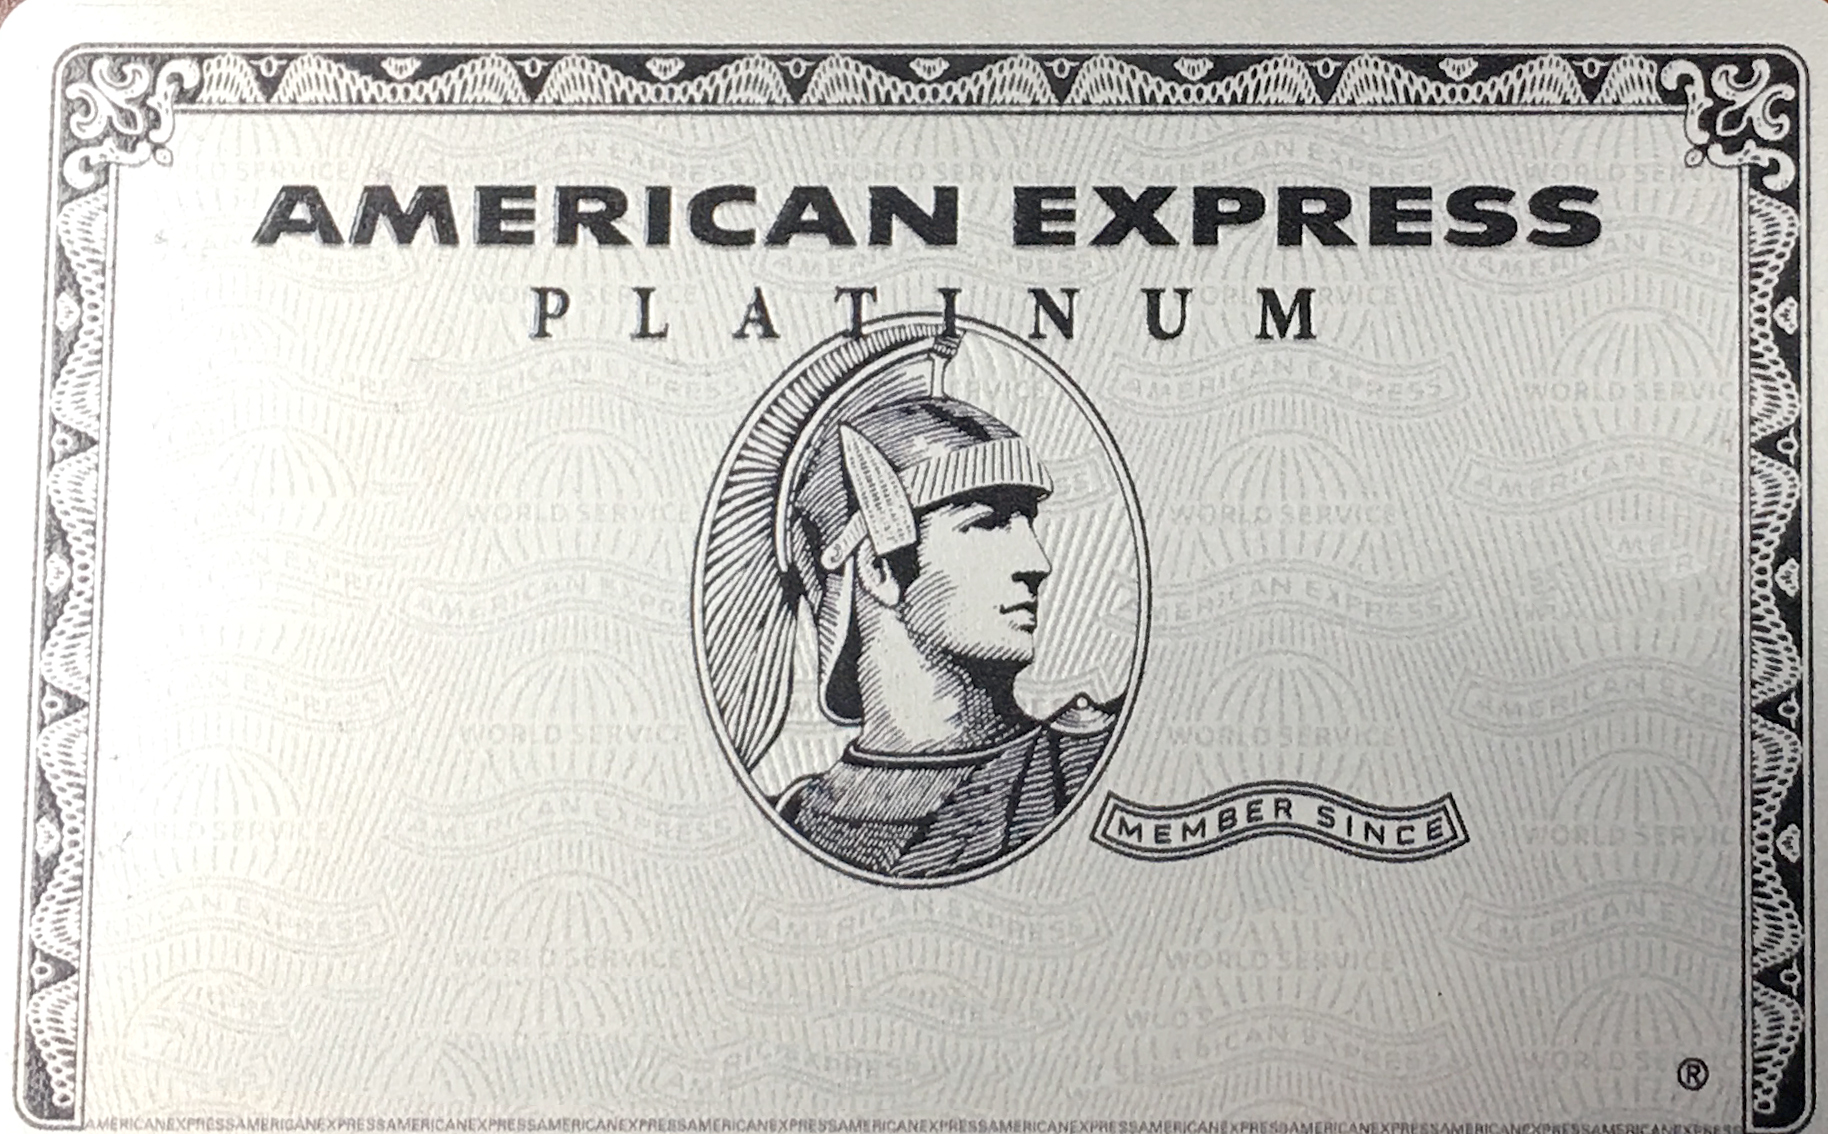 American Express Platinum metal card. (Click for a larger image.)